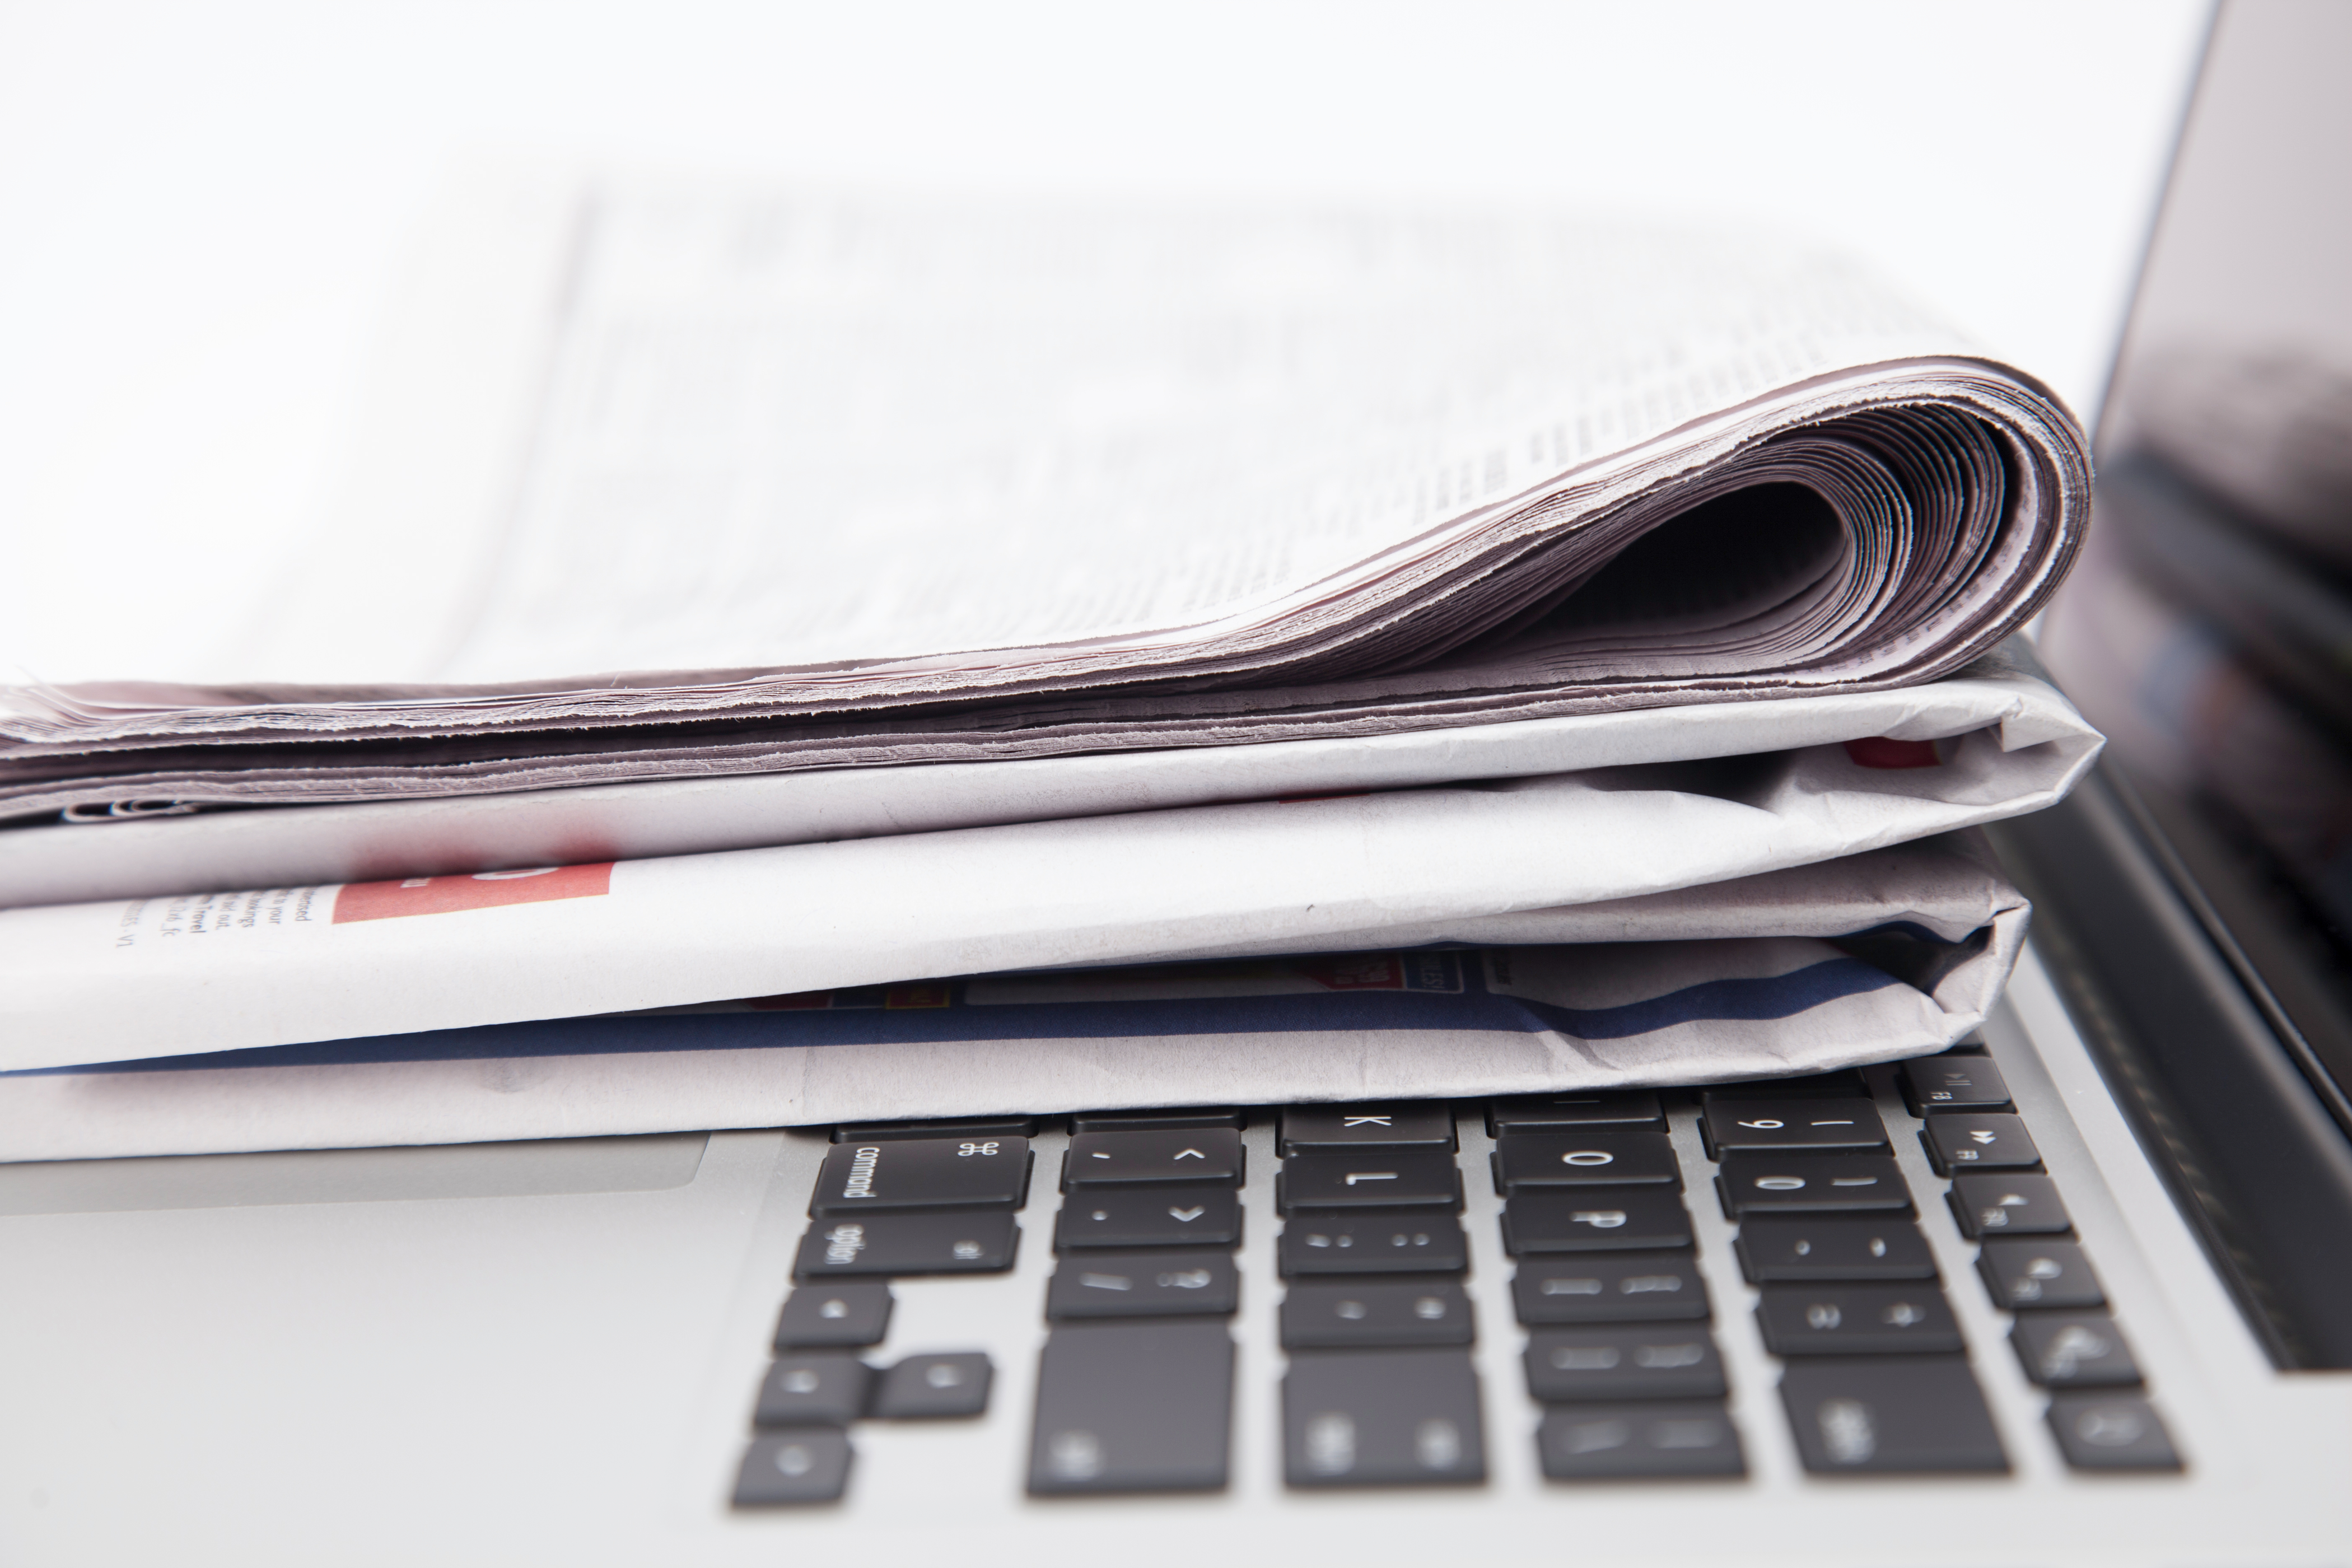 Stack of newspapers resting on laptop keyboard